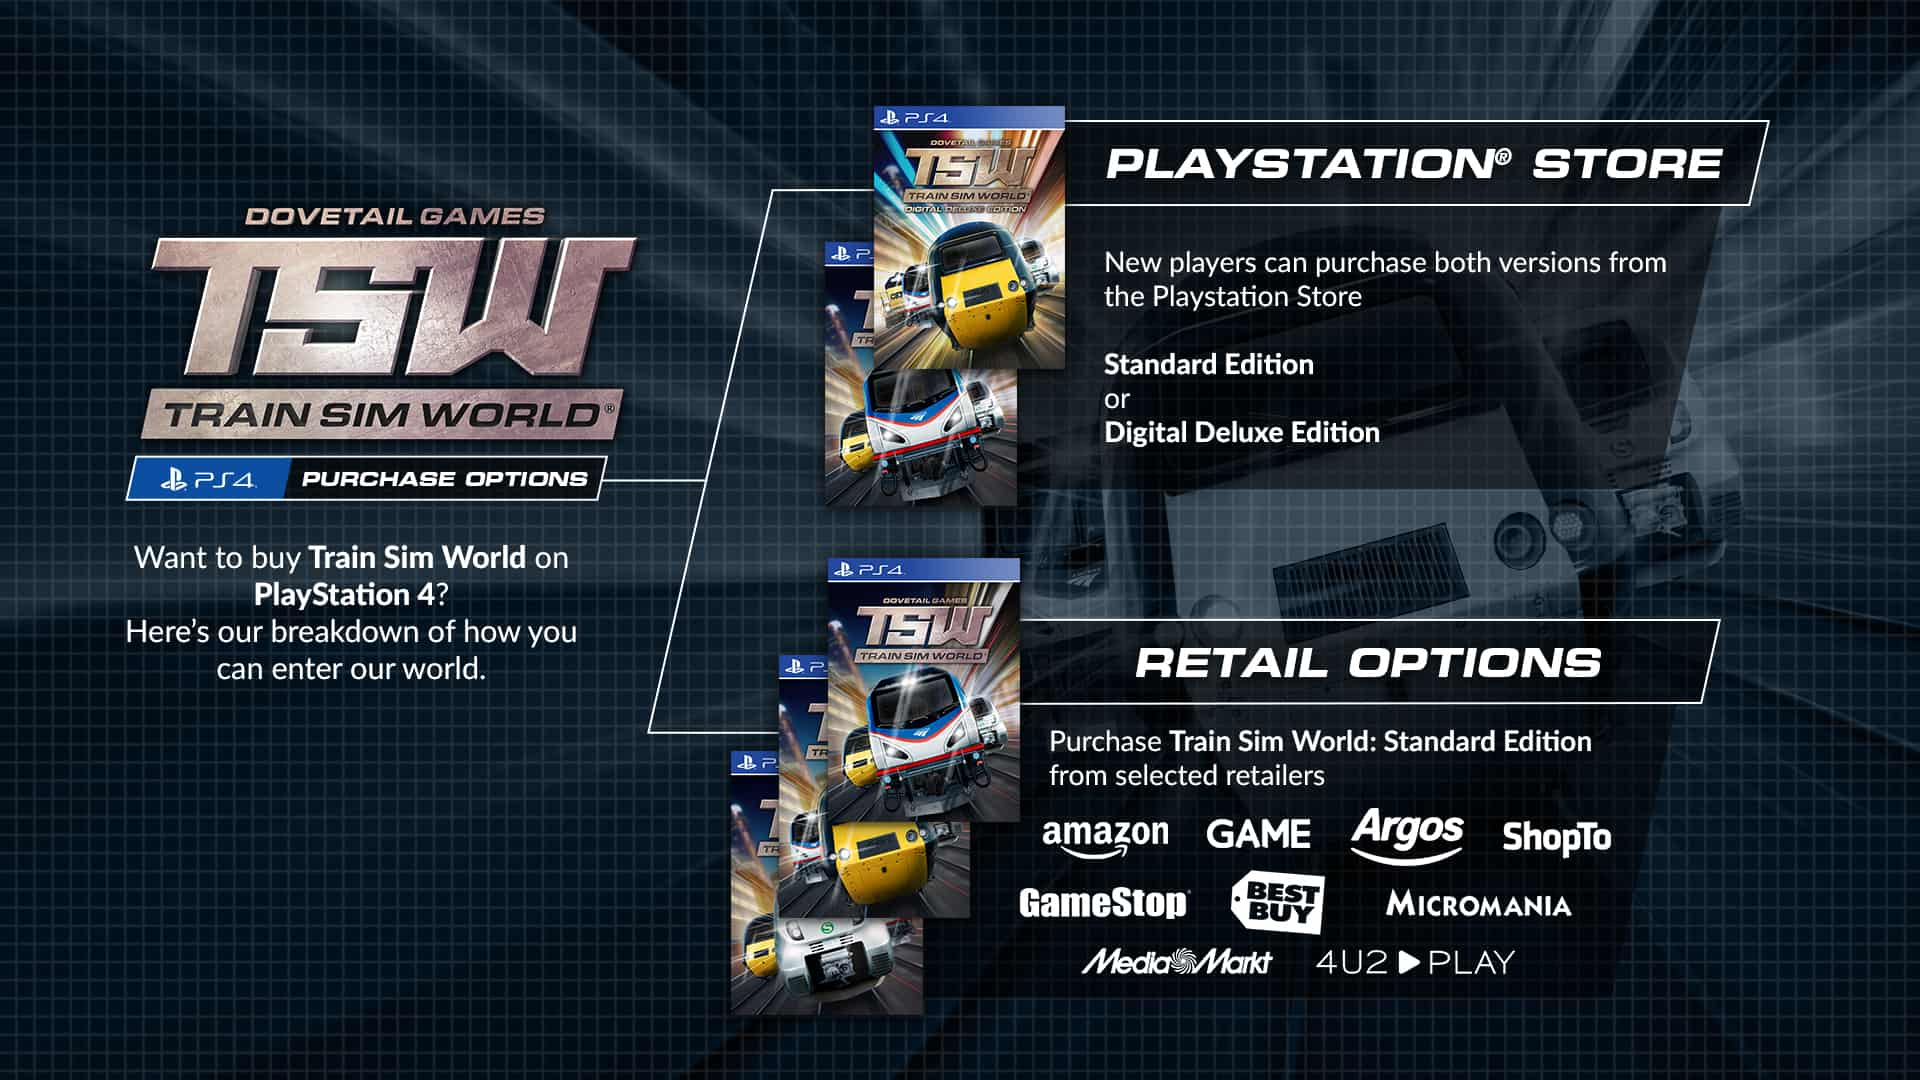 How To Get Train Sim World Playstation 4